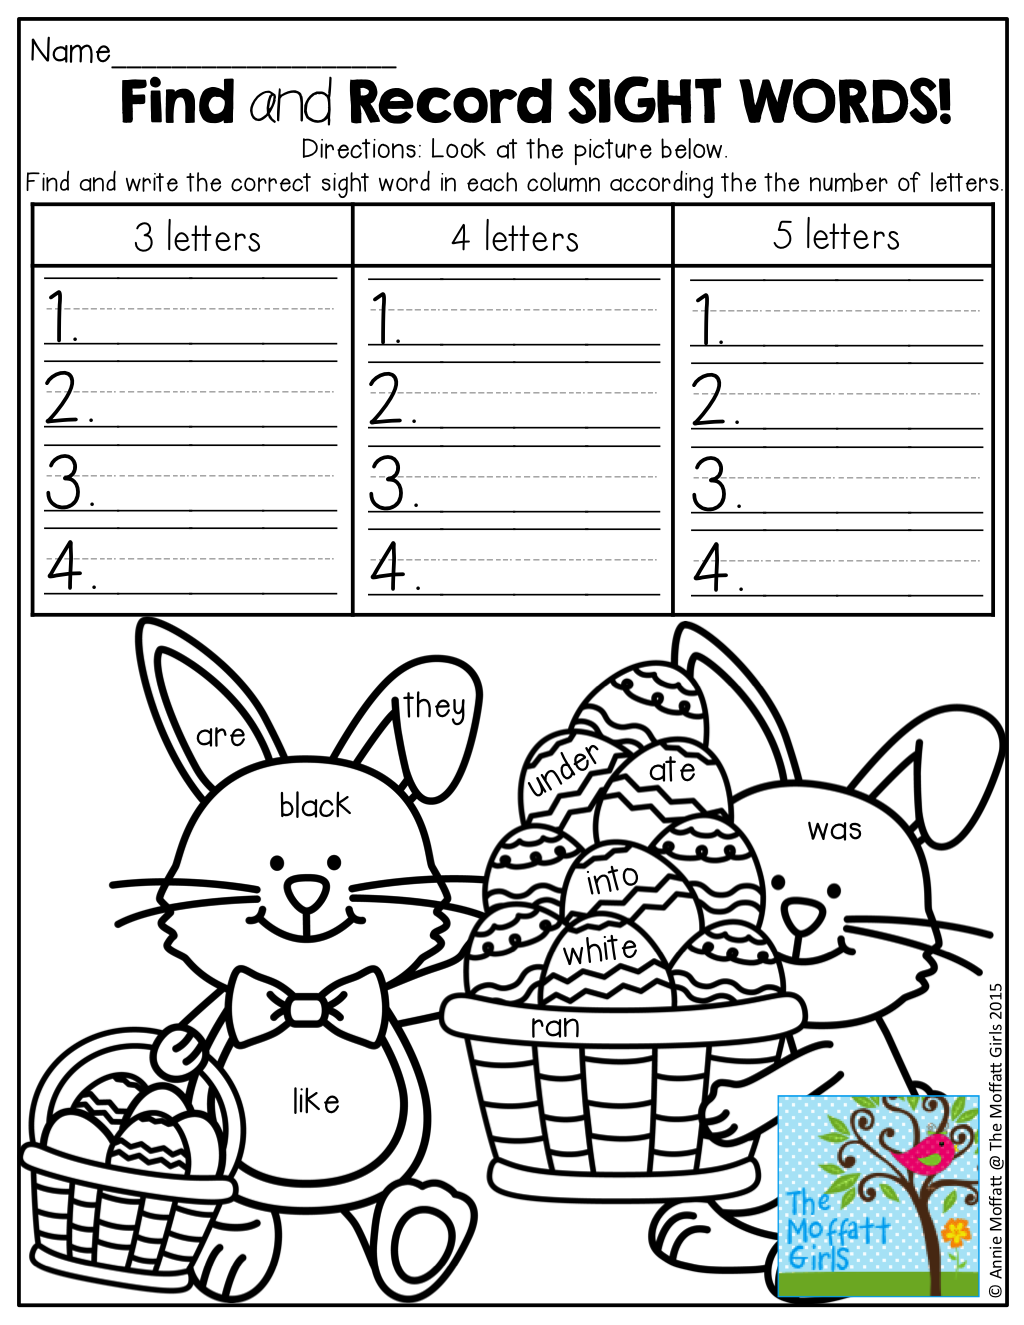 Find And Record A Hidden Sight Word Record The Sight Word According To The Number Of Letters